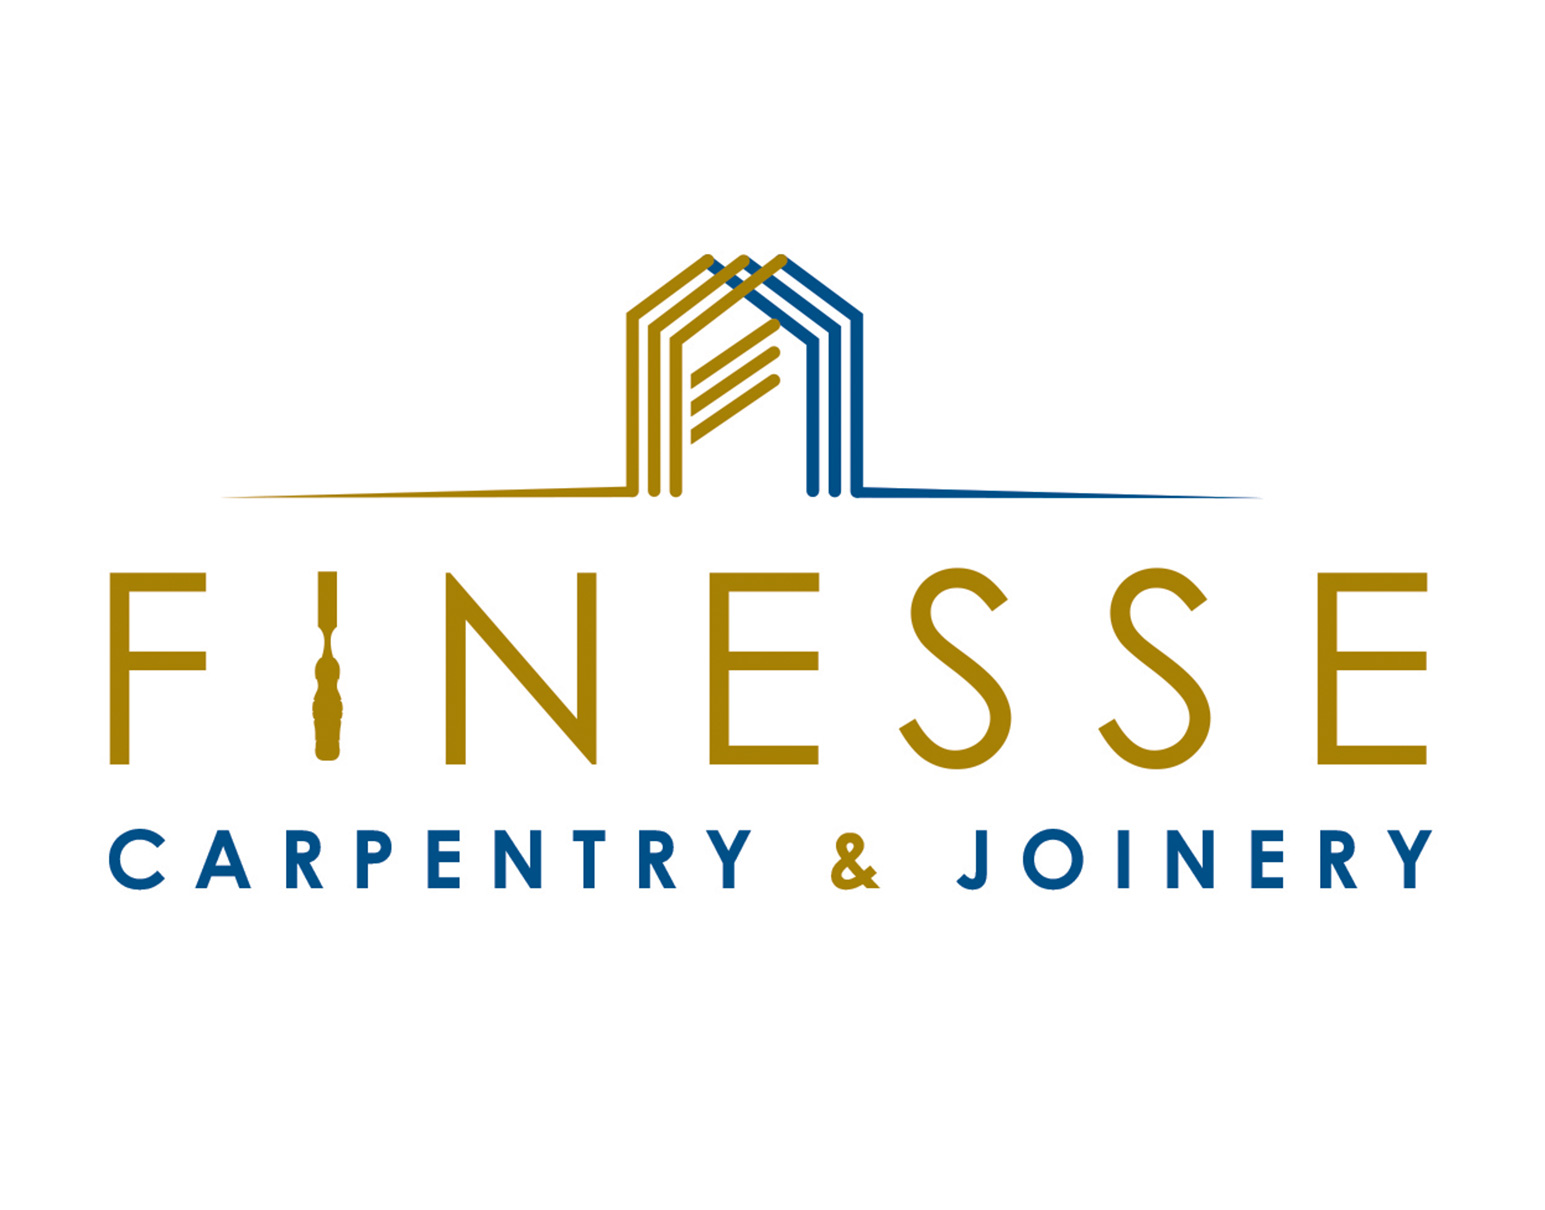 Finesse Carpentry logo and branding